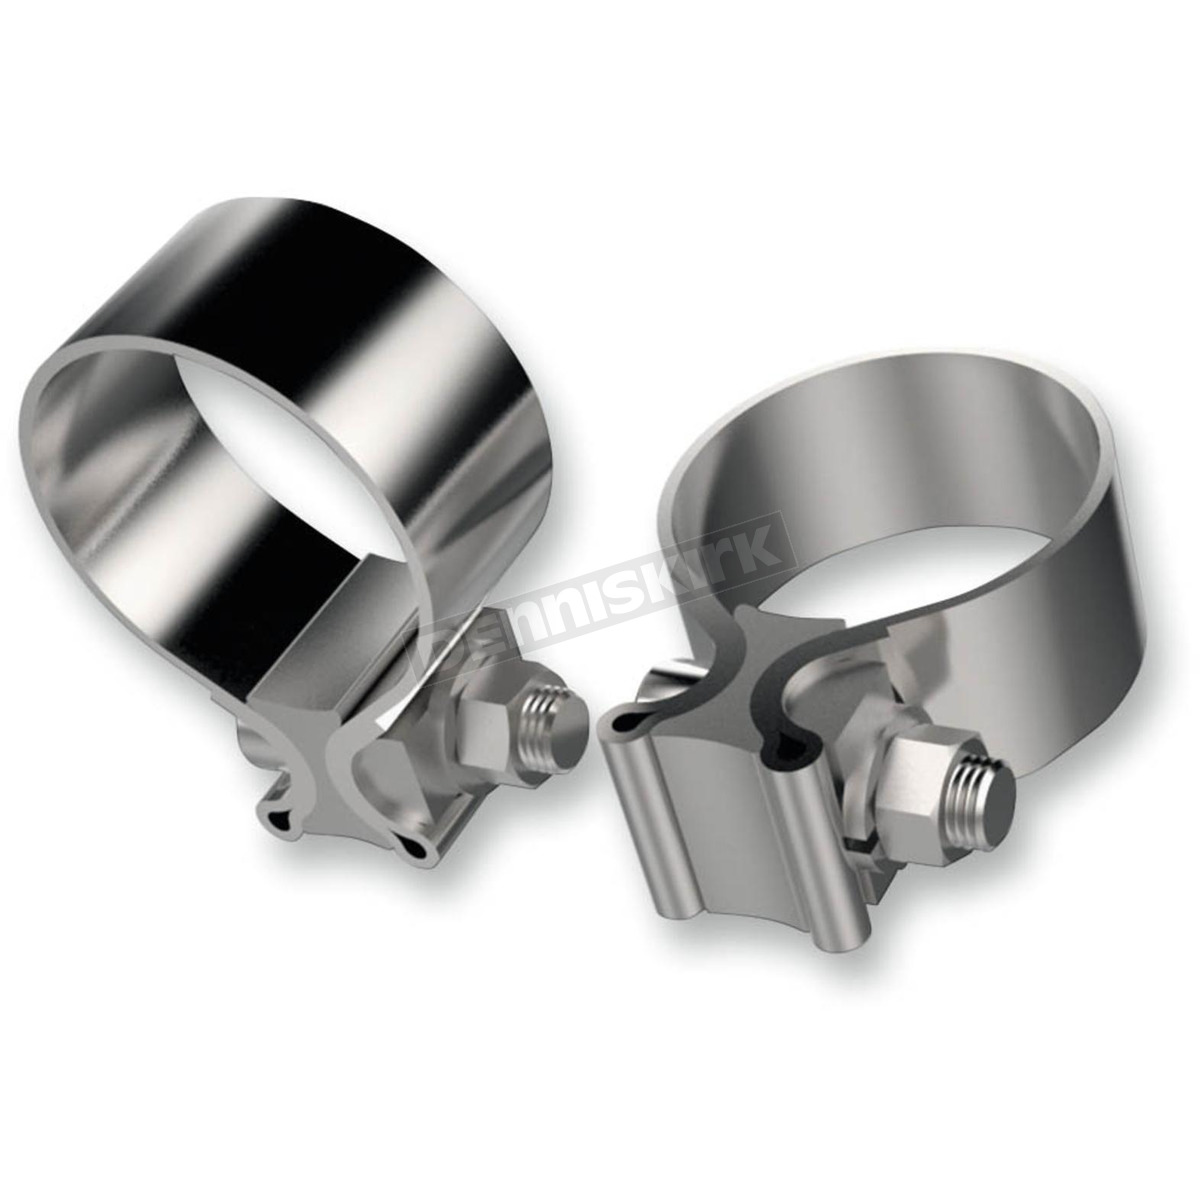 Khrome werks in stainless steel exhaust clamp